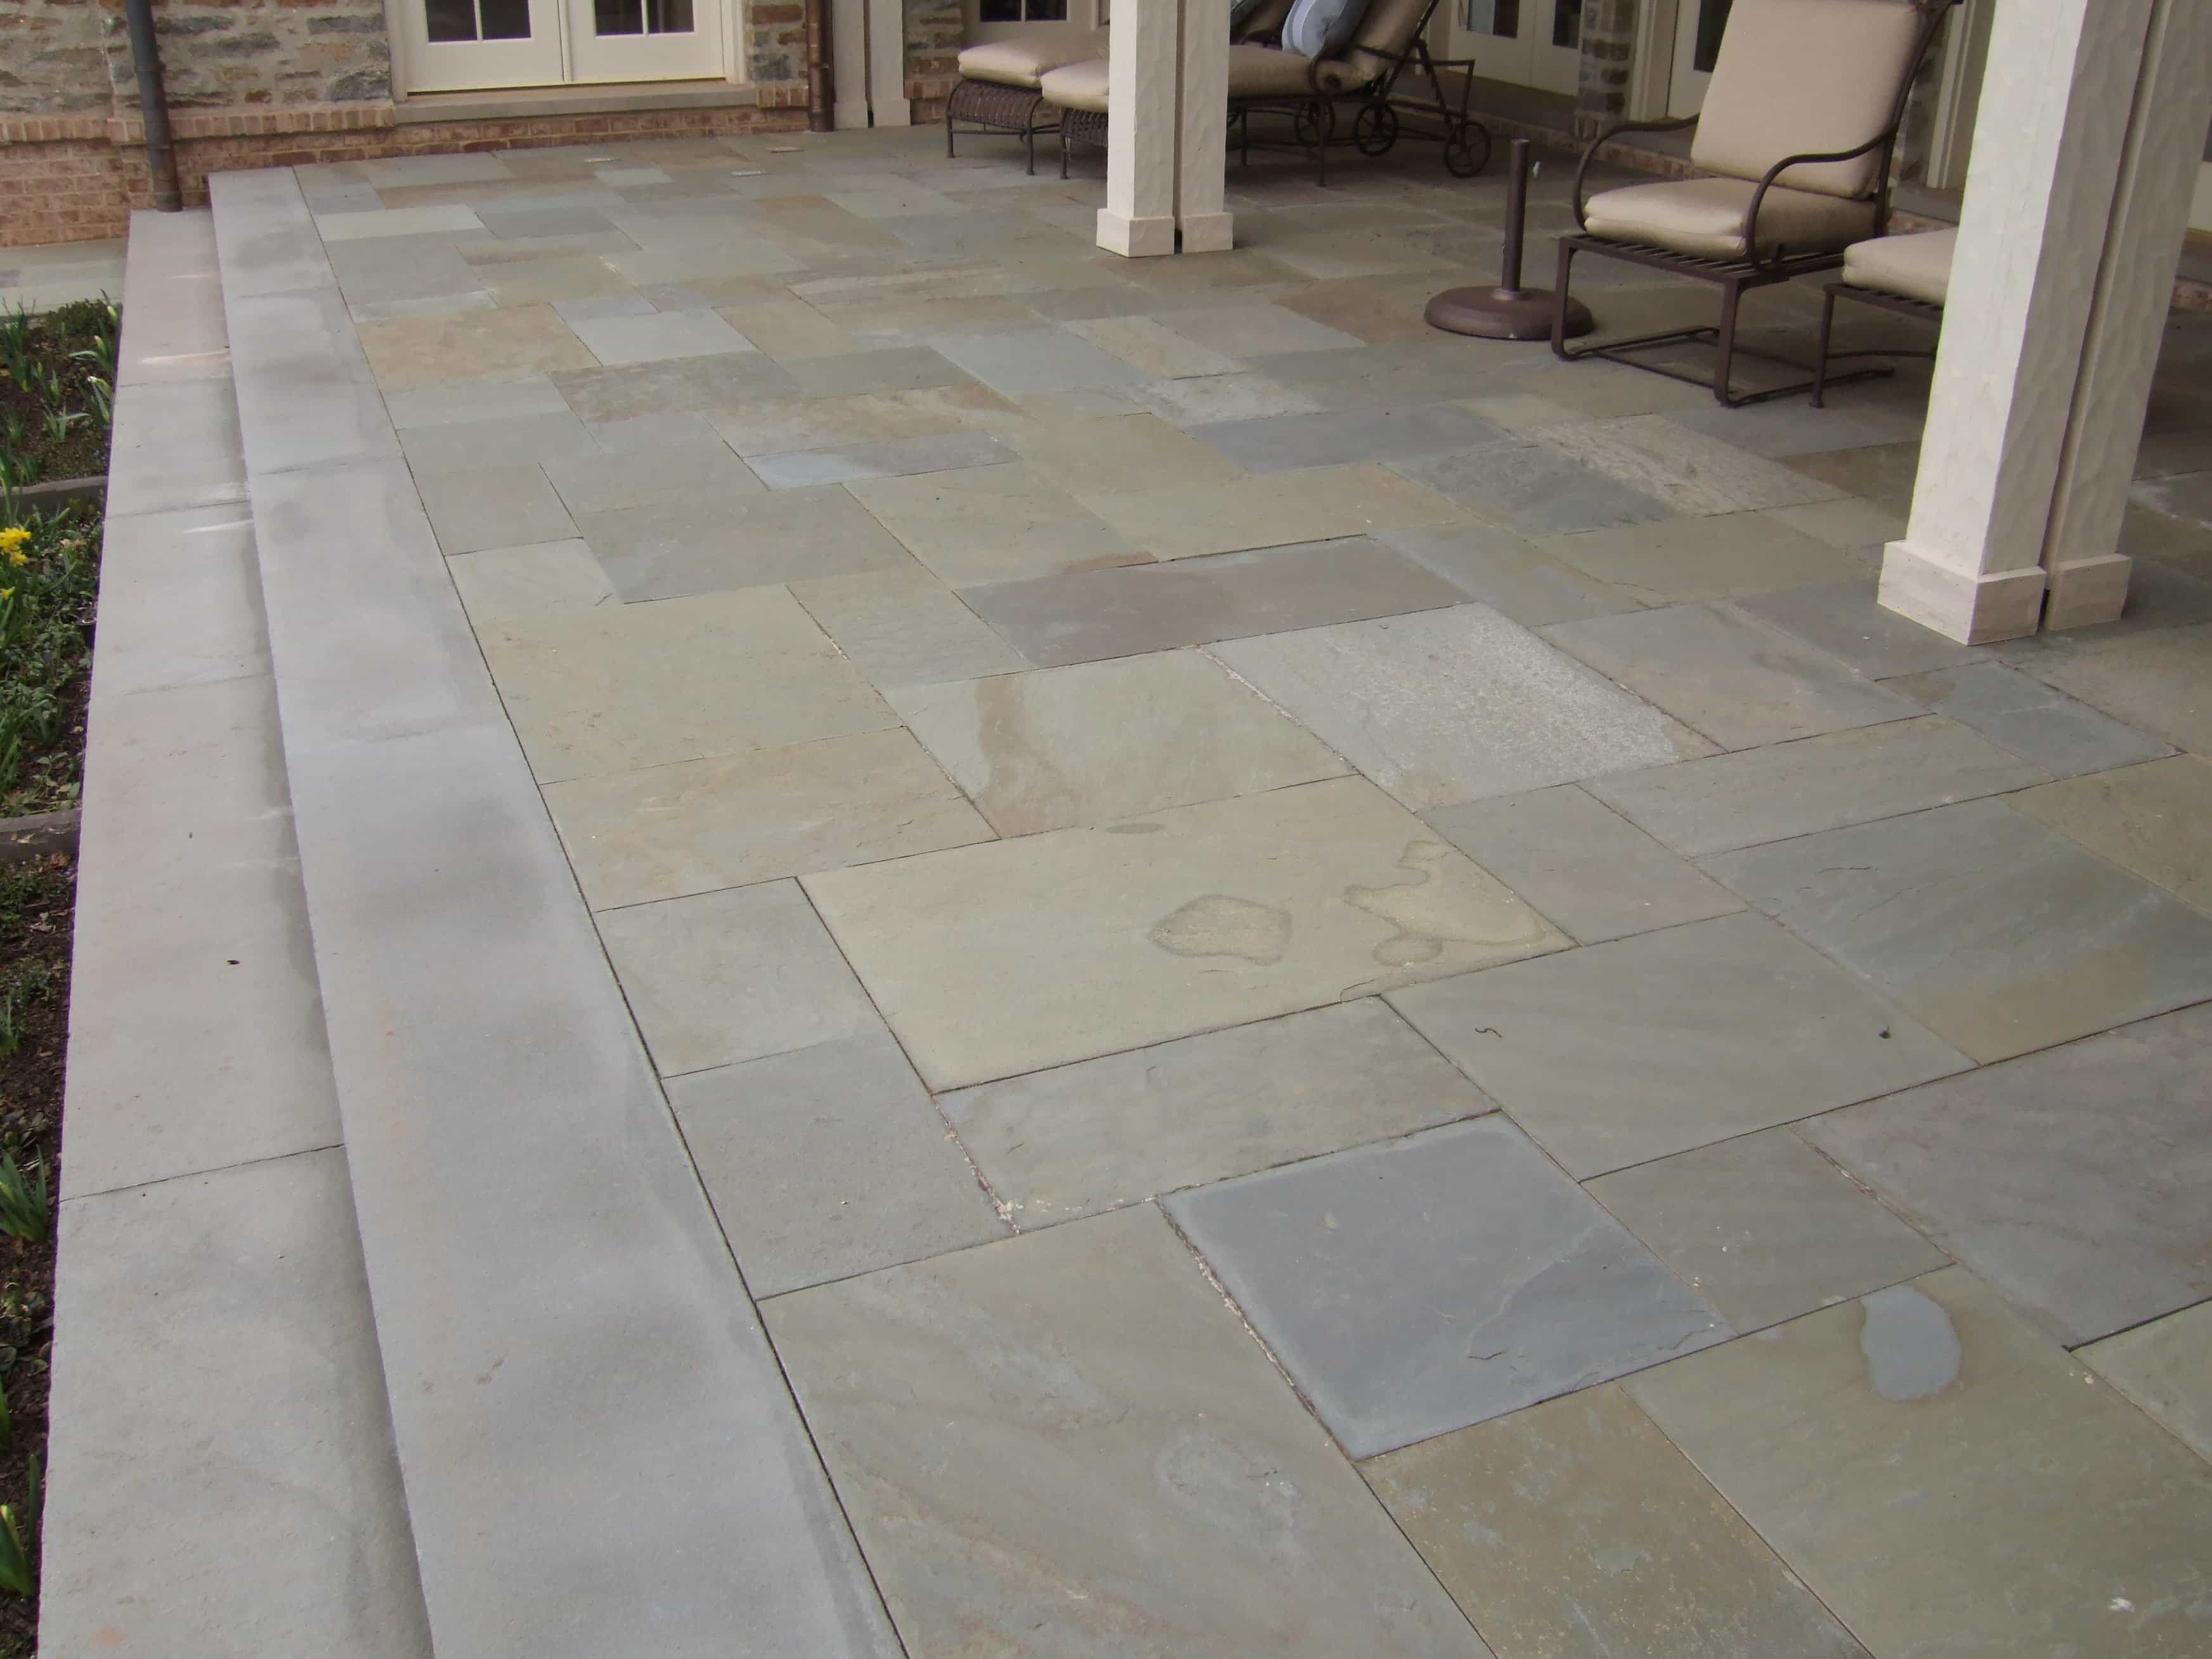 Robinson Flagstone | Typical Flagstone Paving Patterns